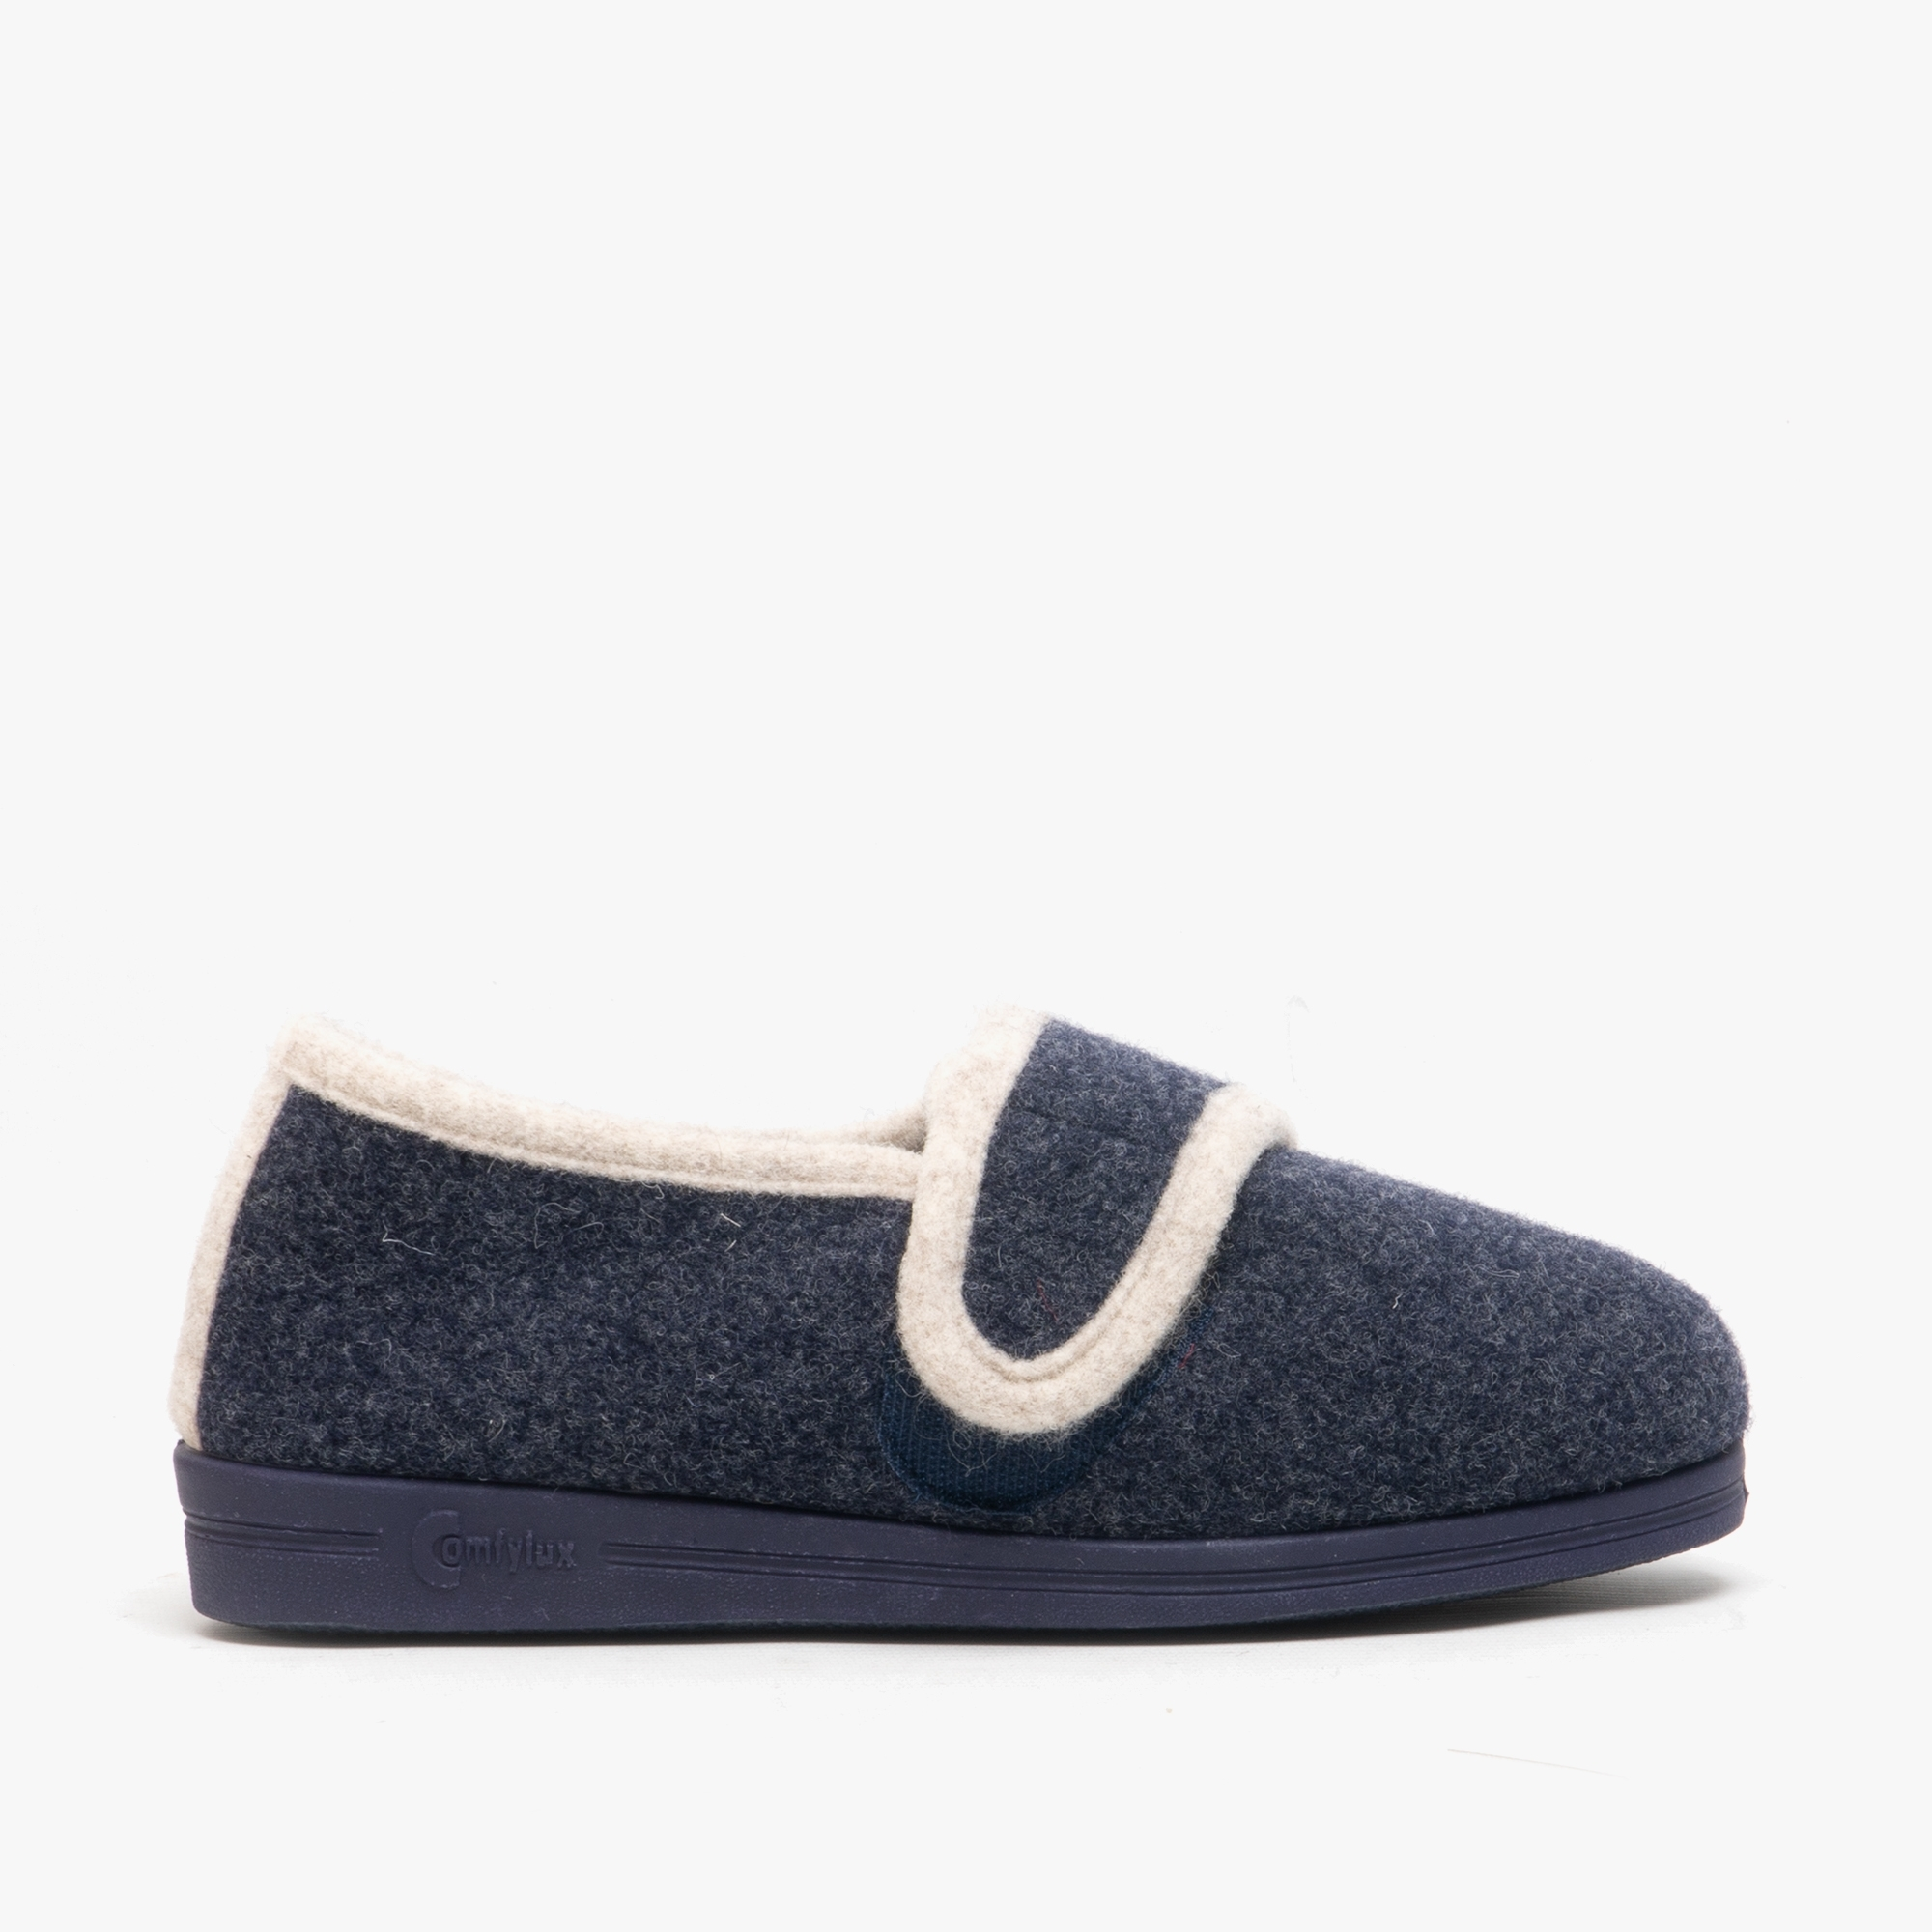 LADIES SIZE 3 4 5 6 7 8 9 BLUE COMFYLUX EEEE SUPERWIDE TOUCH FASTENING SLIPPERS